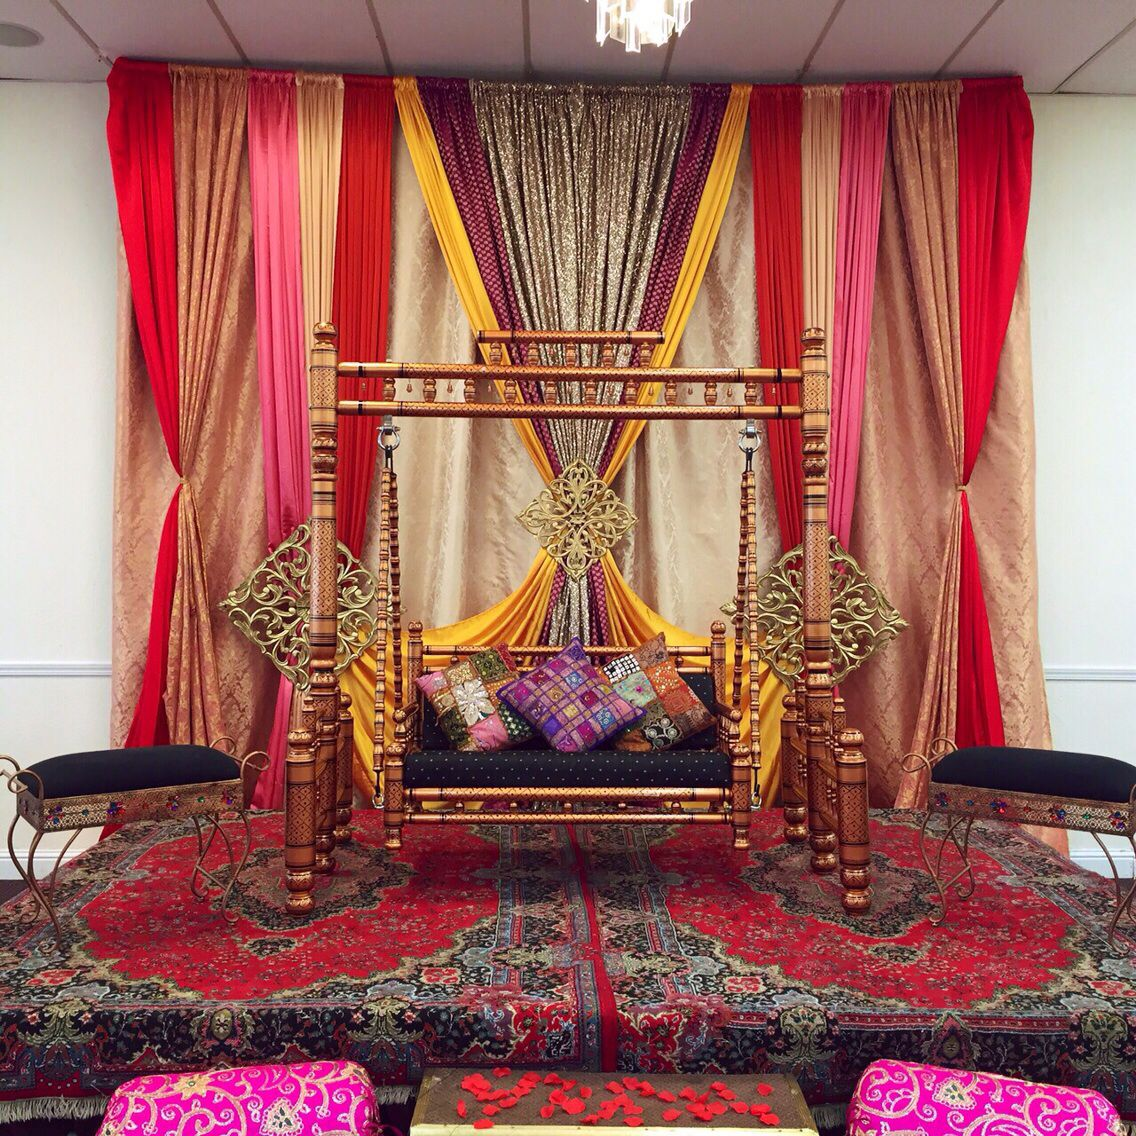 An rr original for indian wedding decorations in the bay area for indian wedding decorations in the bay area california contact rr event rentals located in union city serving the bay area and beyond junglespirit Images